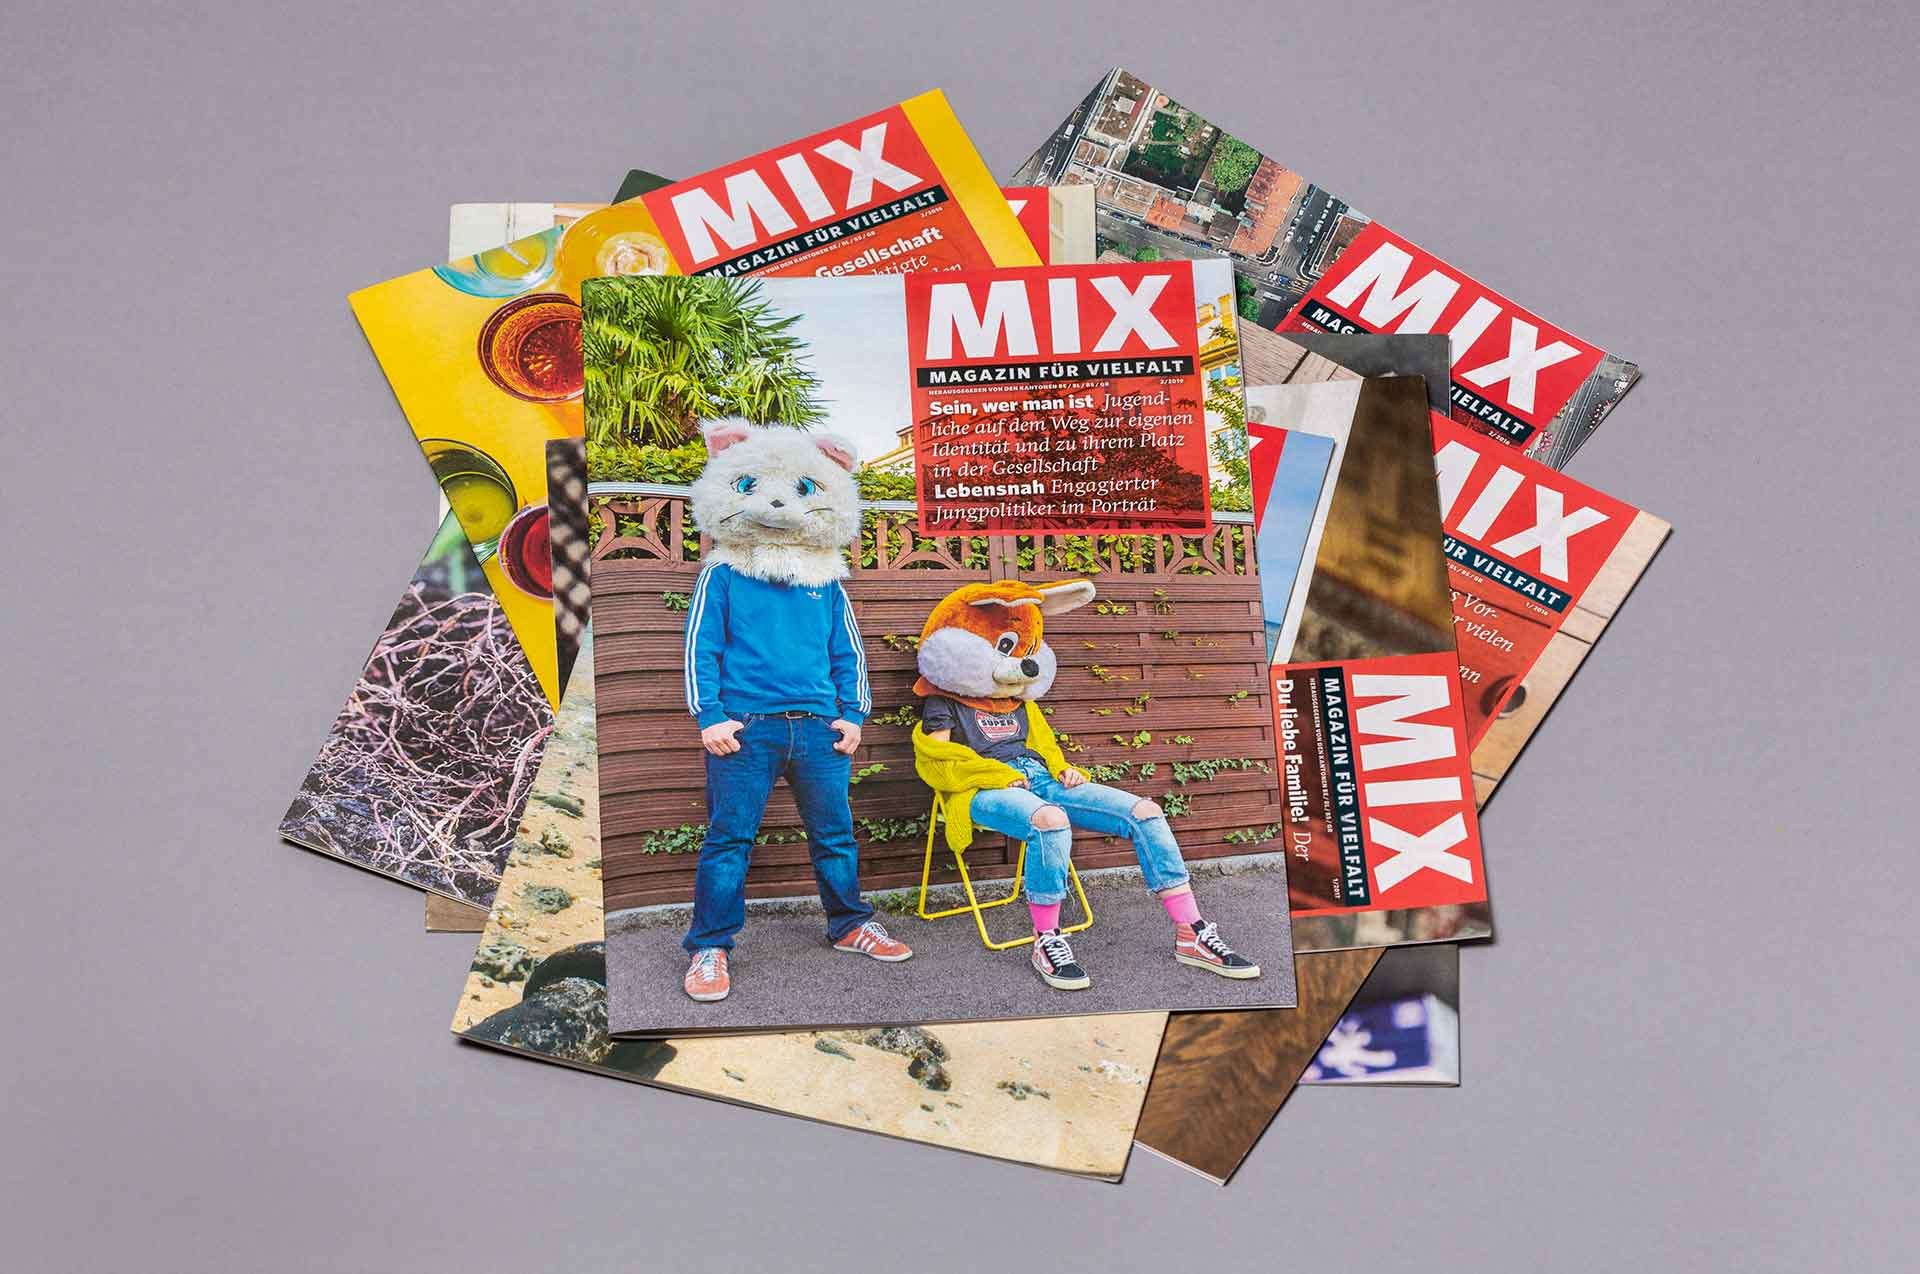 fachstelleintegration-mixmagazin-covers